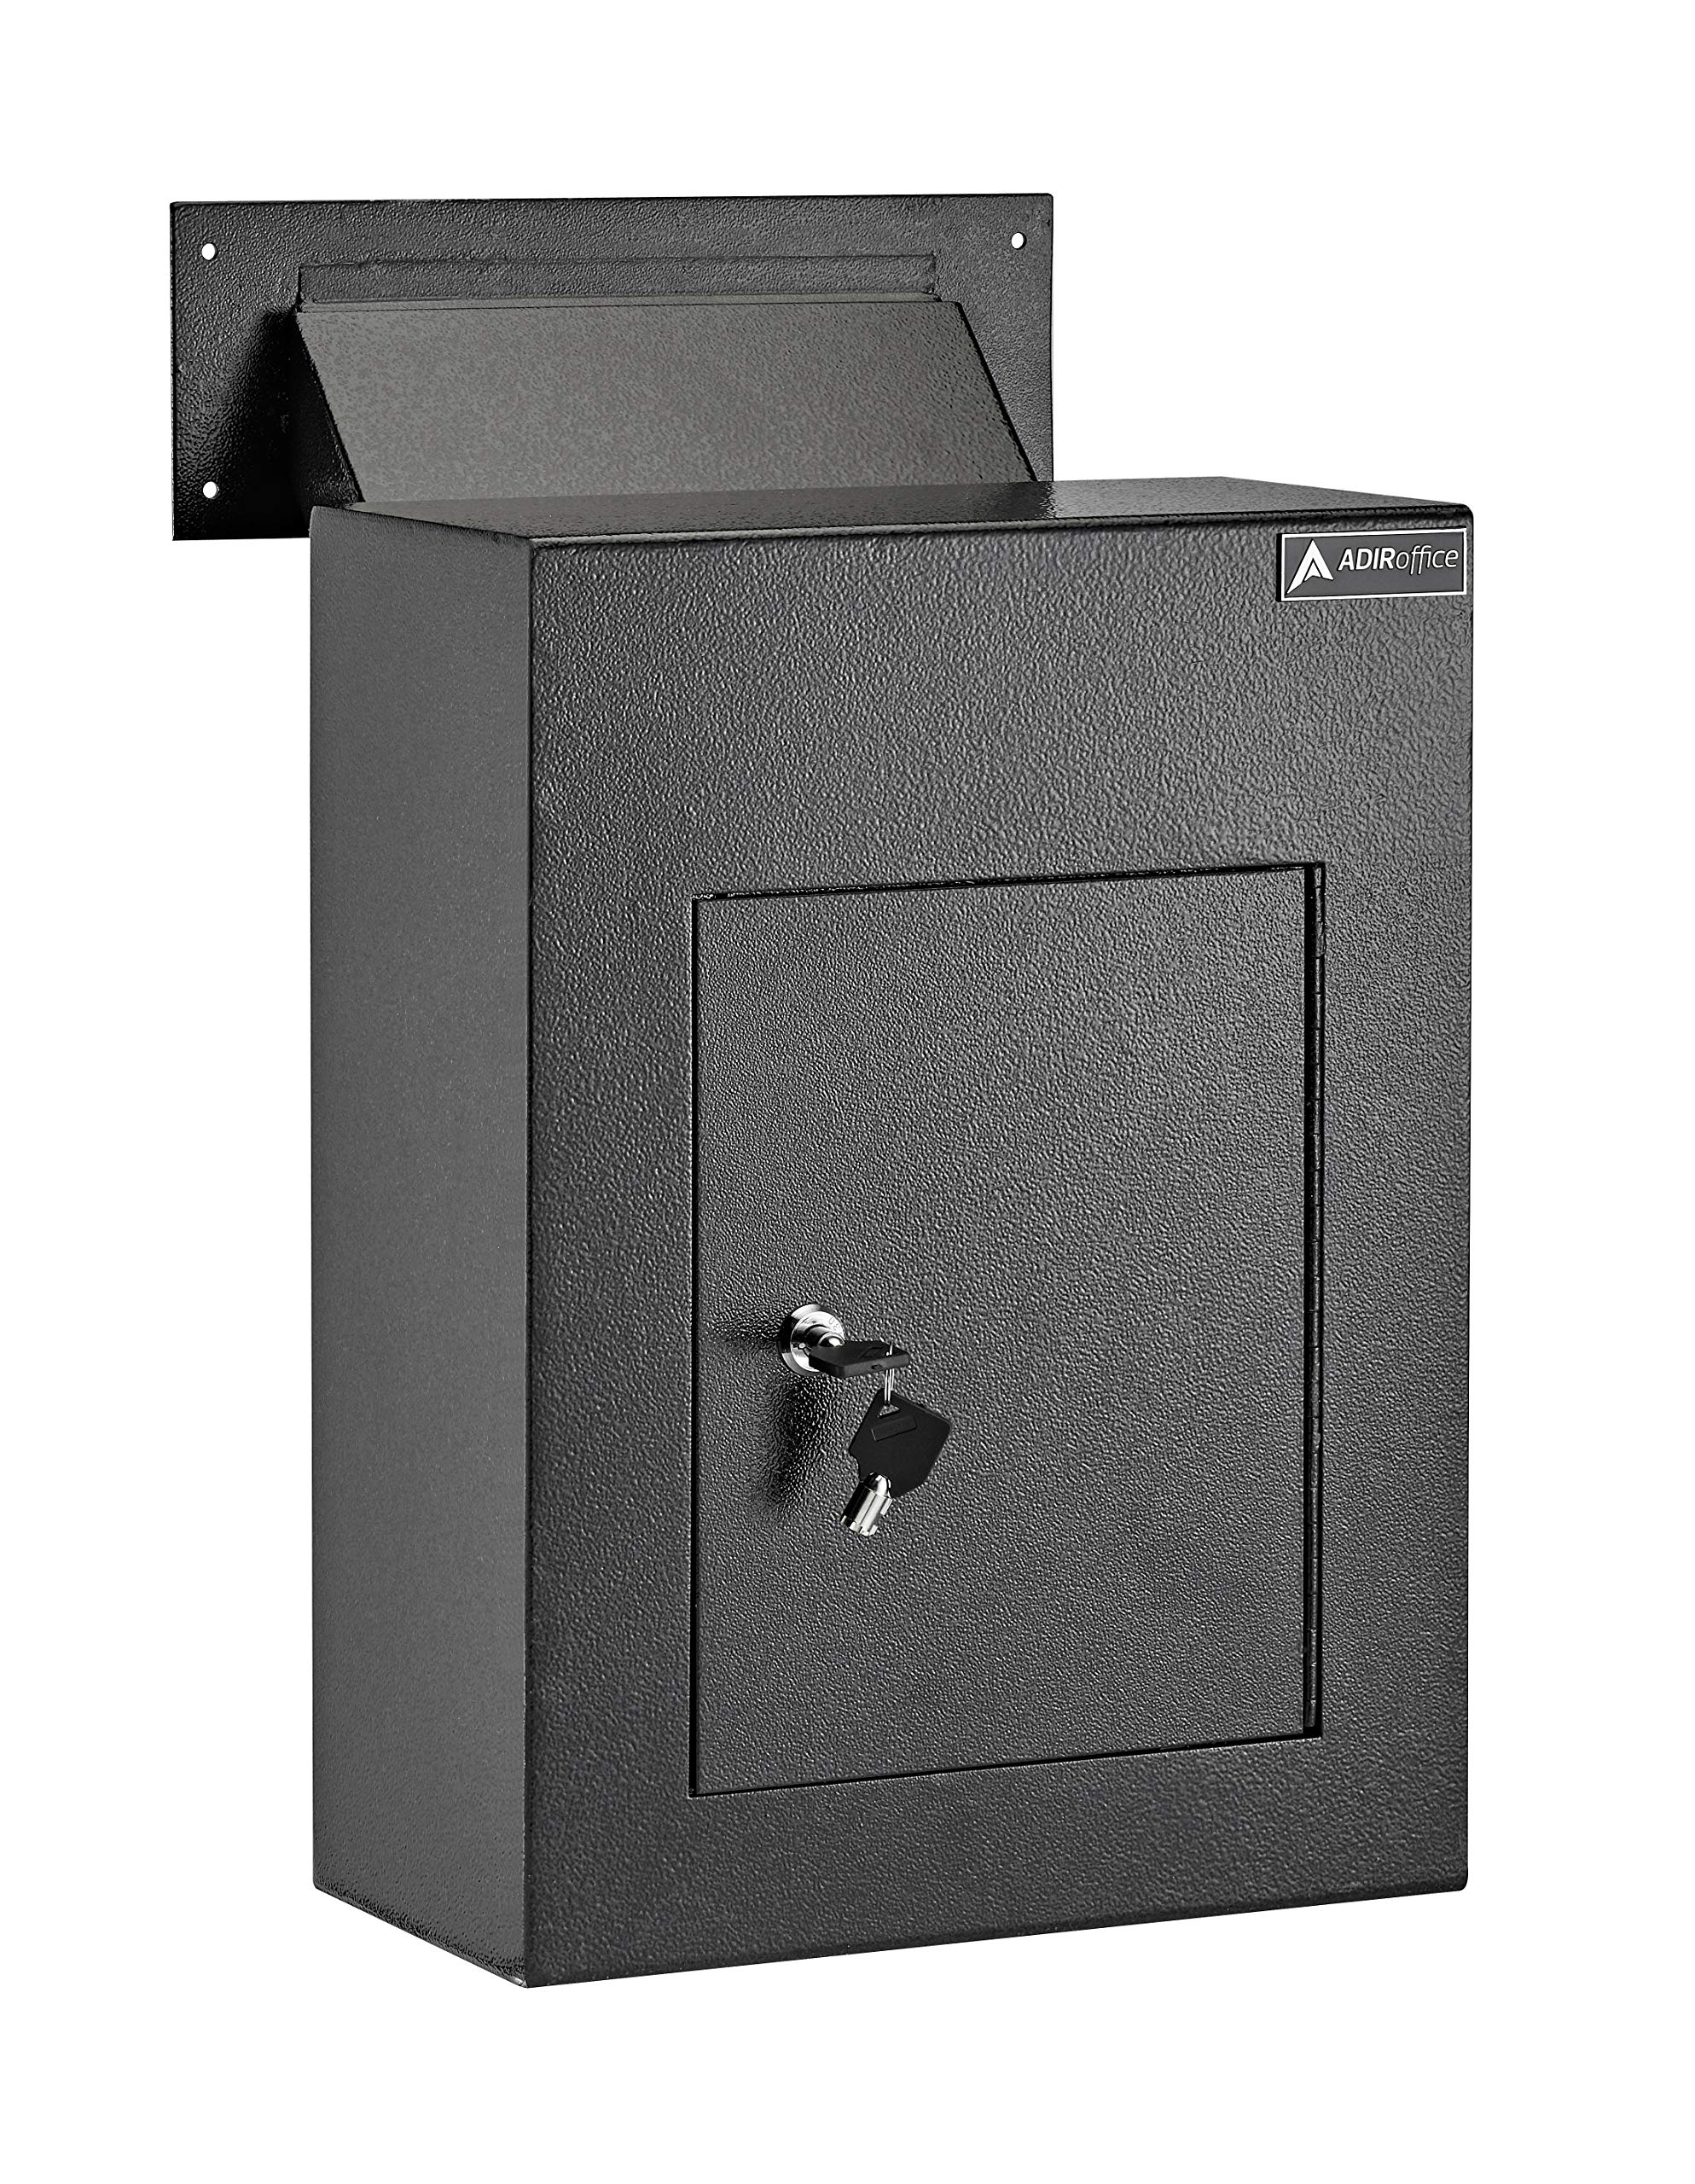 AdirOffice Through The Wall Drop Box Safe (Black/Grey/White) - Durable Thick Steel w/Adjustable Chute - Mail Vault for Home Office Hotel Apartment (Black) by AdirOffice